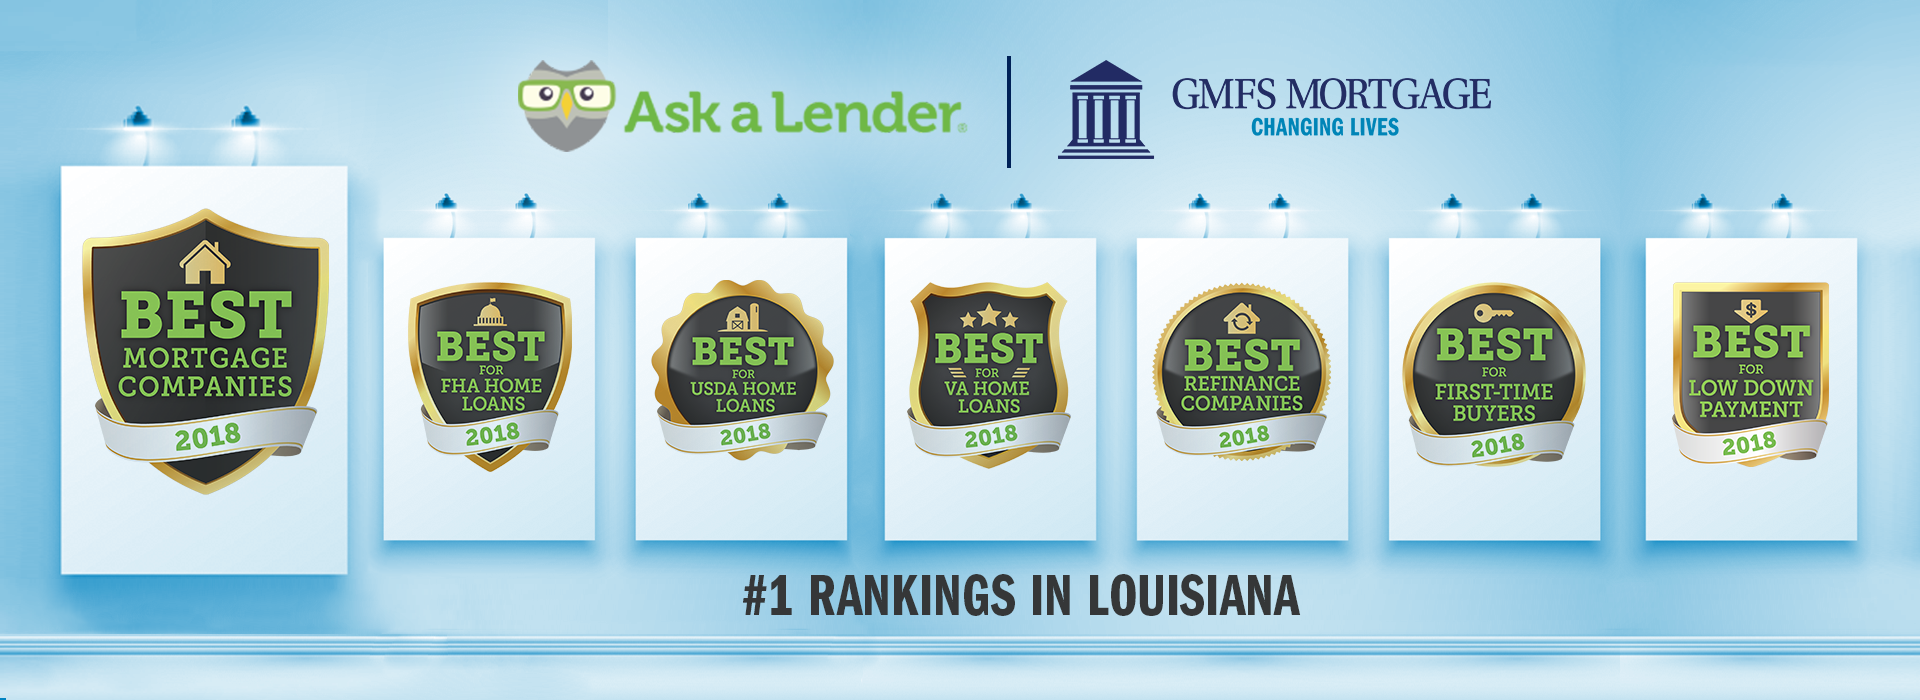 Ask a Lender Ranks GMFS Mortgage as Best Mortgage Company in Louisiana for 2018!